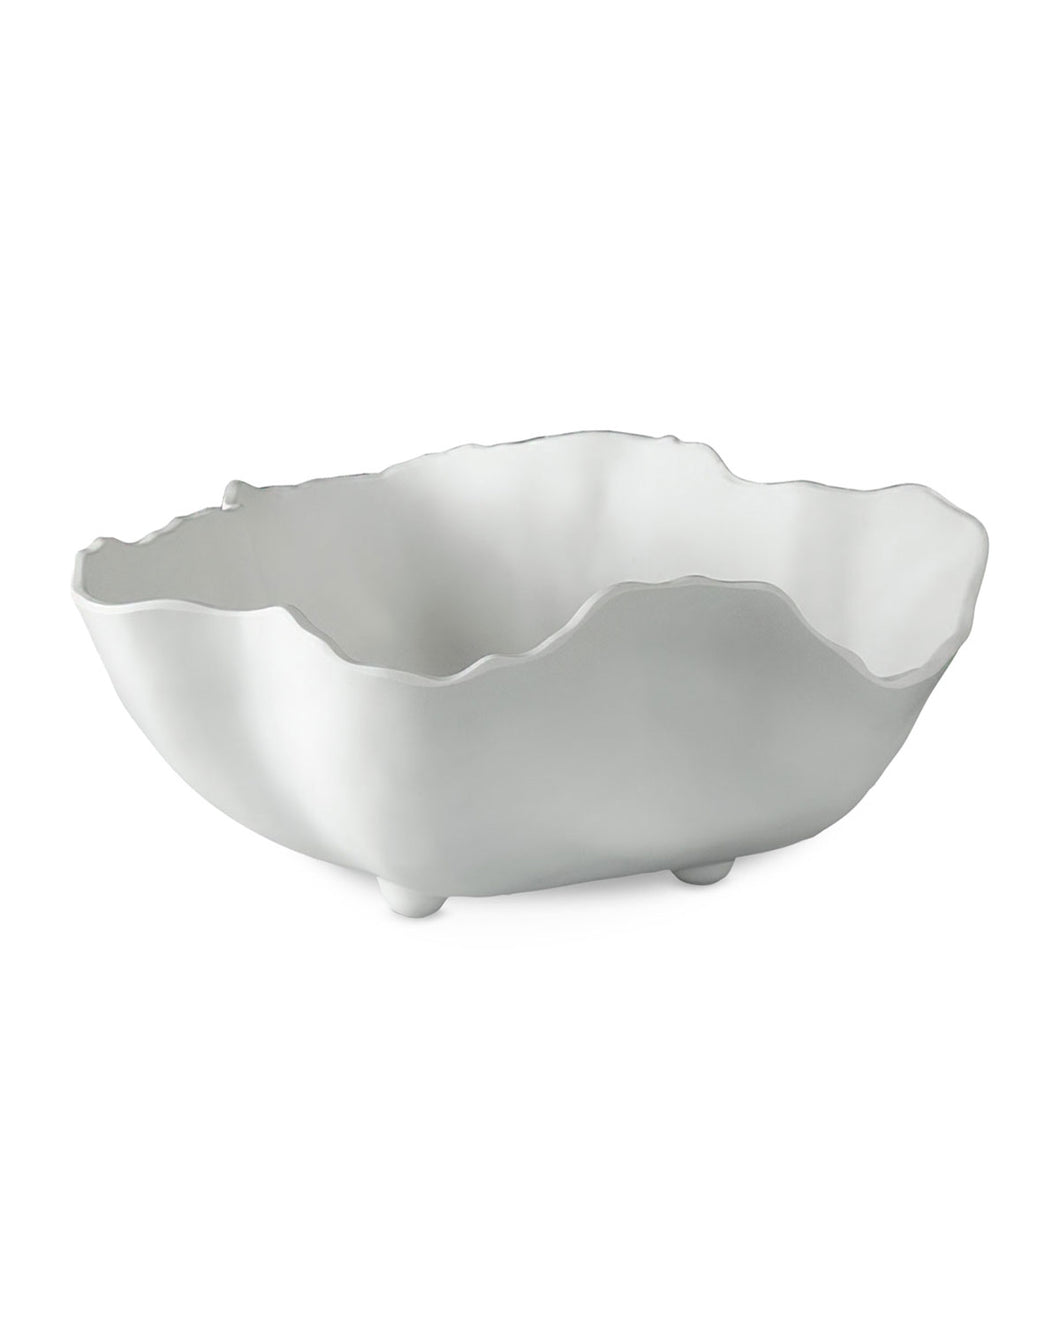 VIDA Nube Large Bowl